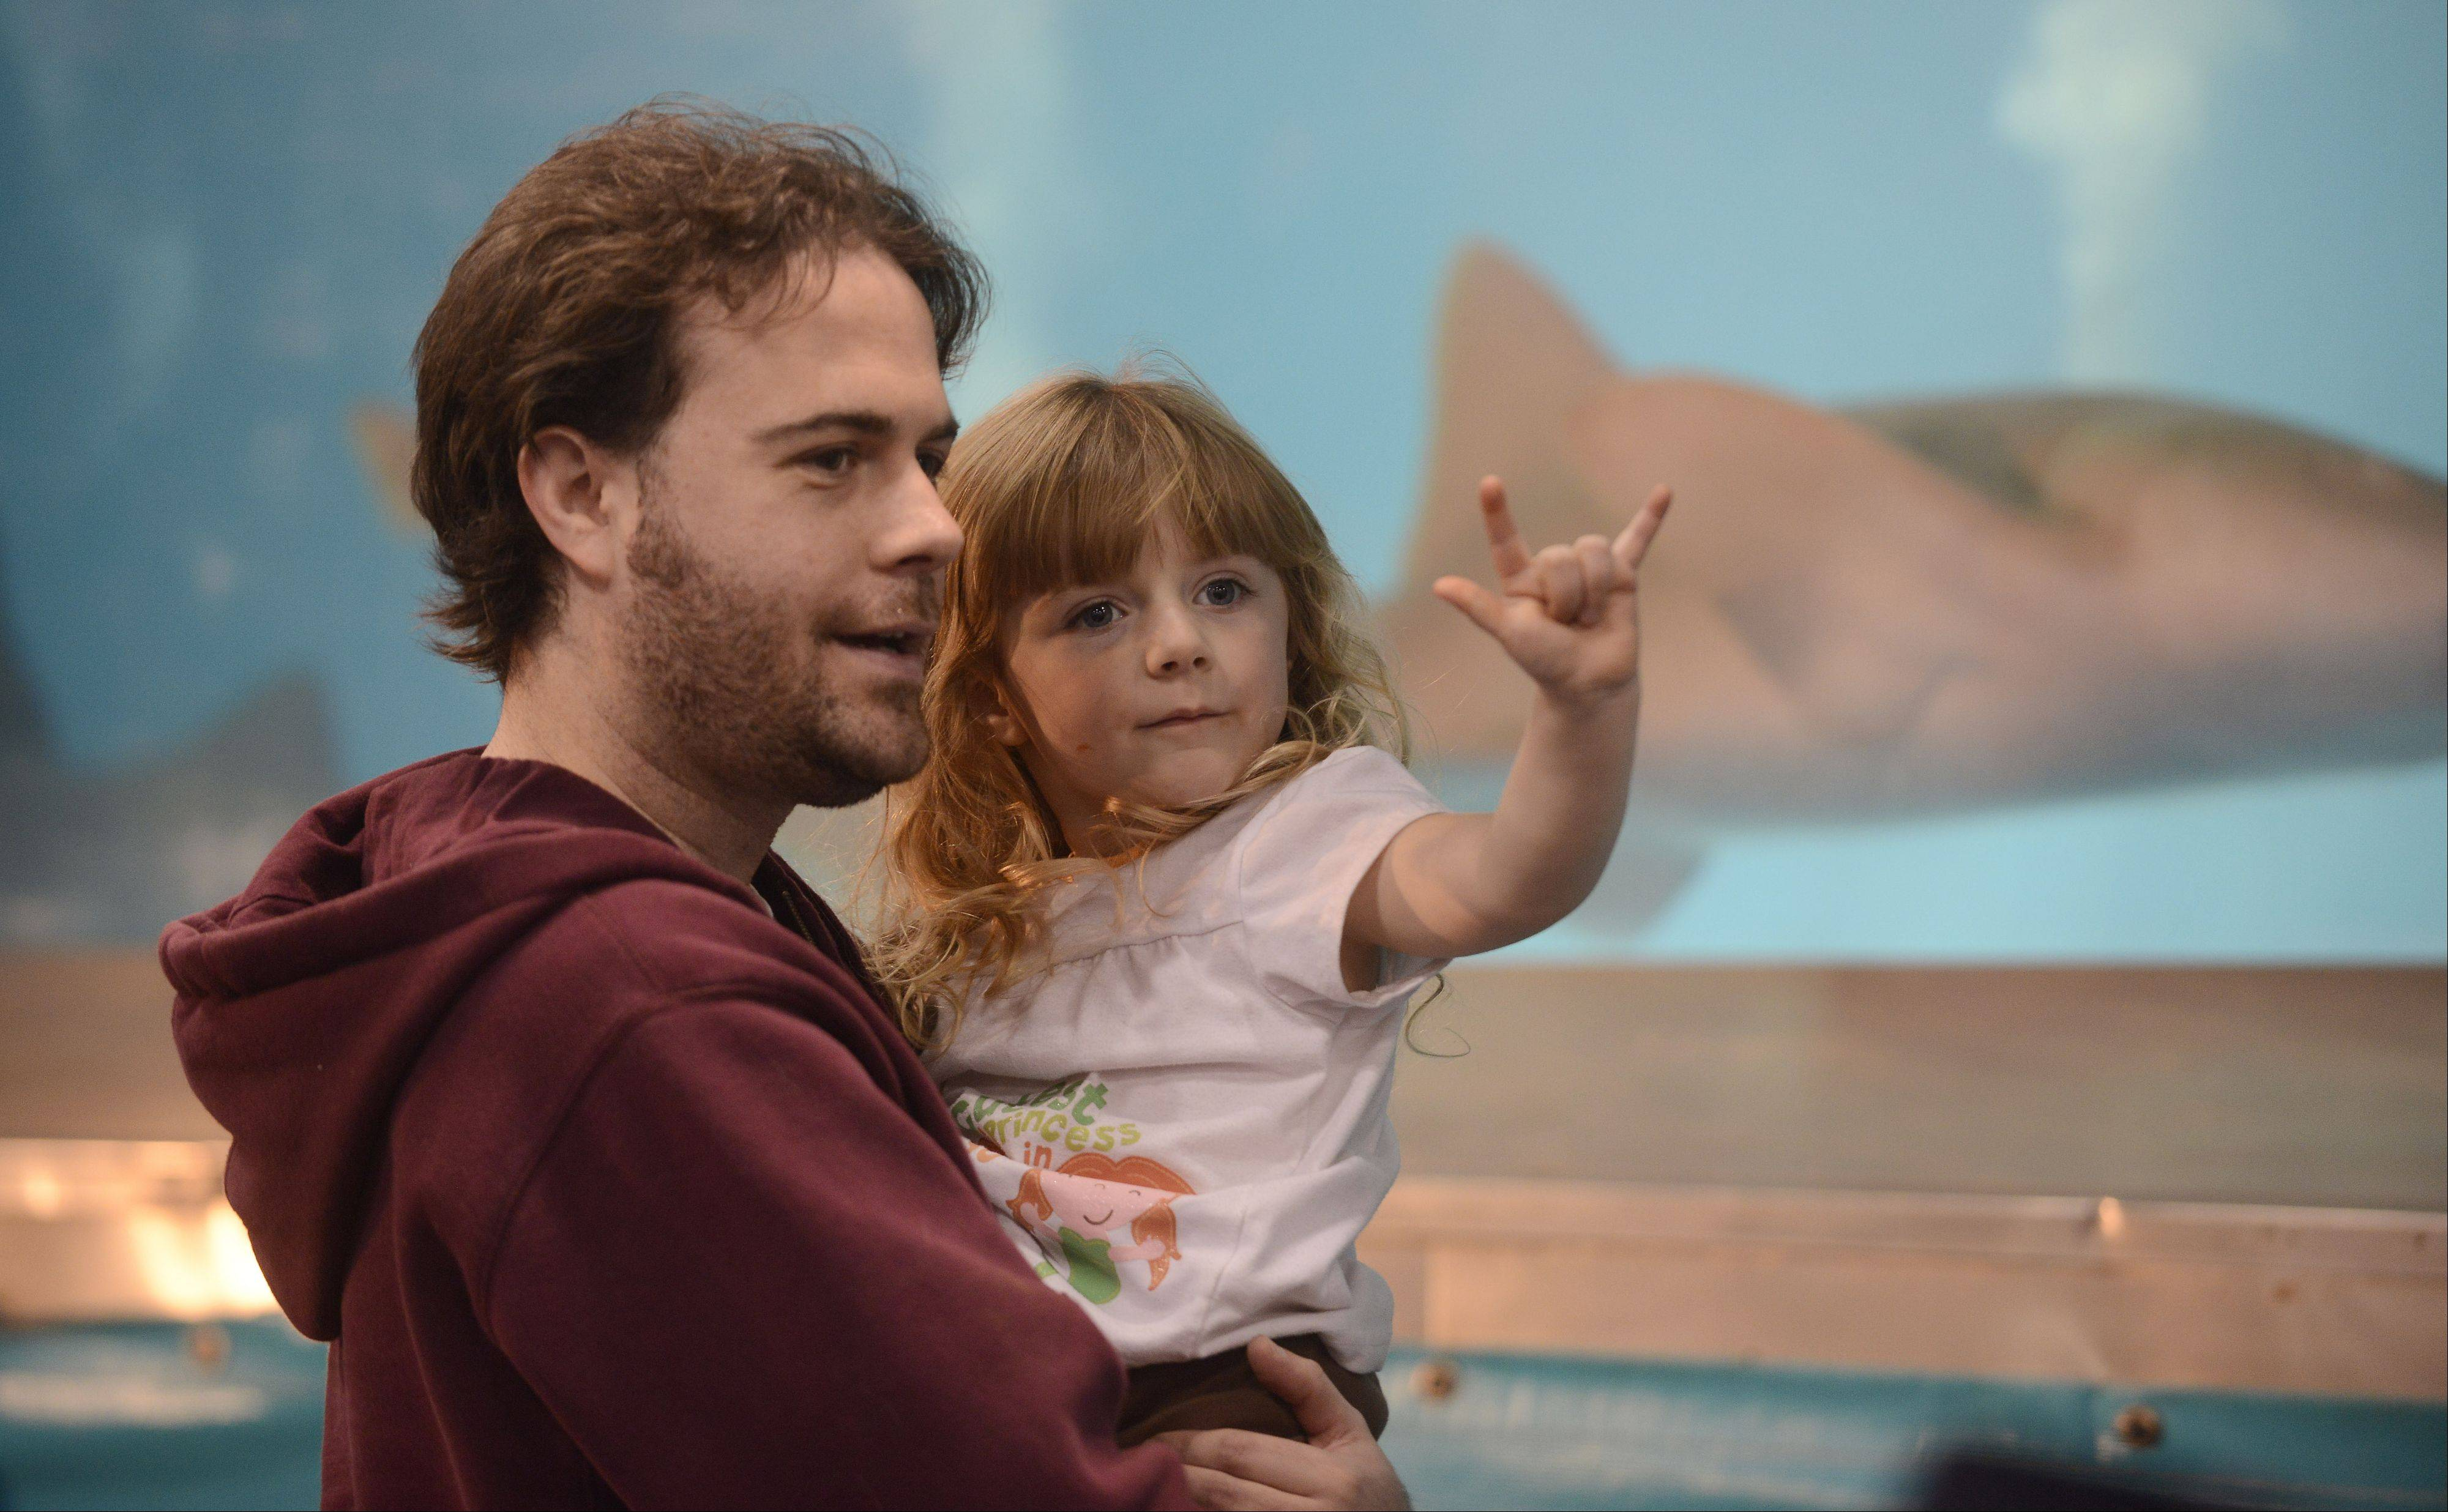 Jaymes Parker of St. Charles and his daughter, Lucinda, 3½, view the shark tank during the Chicago Aquatic Experience Show, held at the Renaissance Schaumburg Convention Center Saturday.